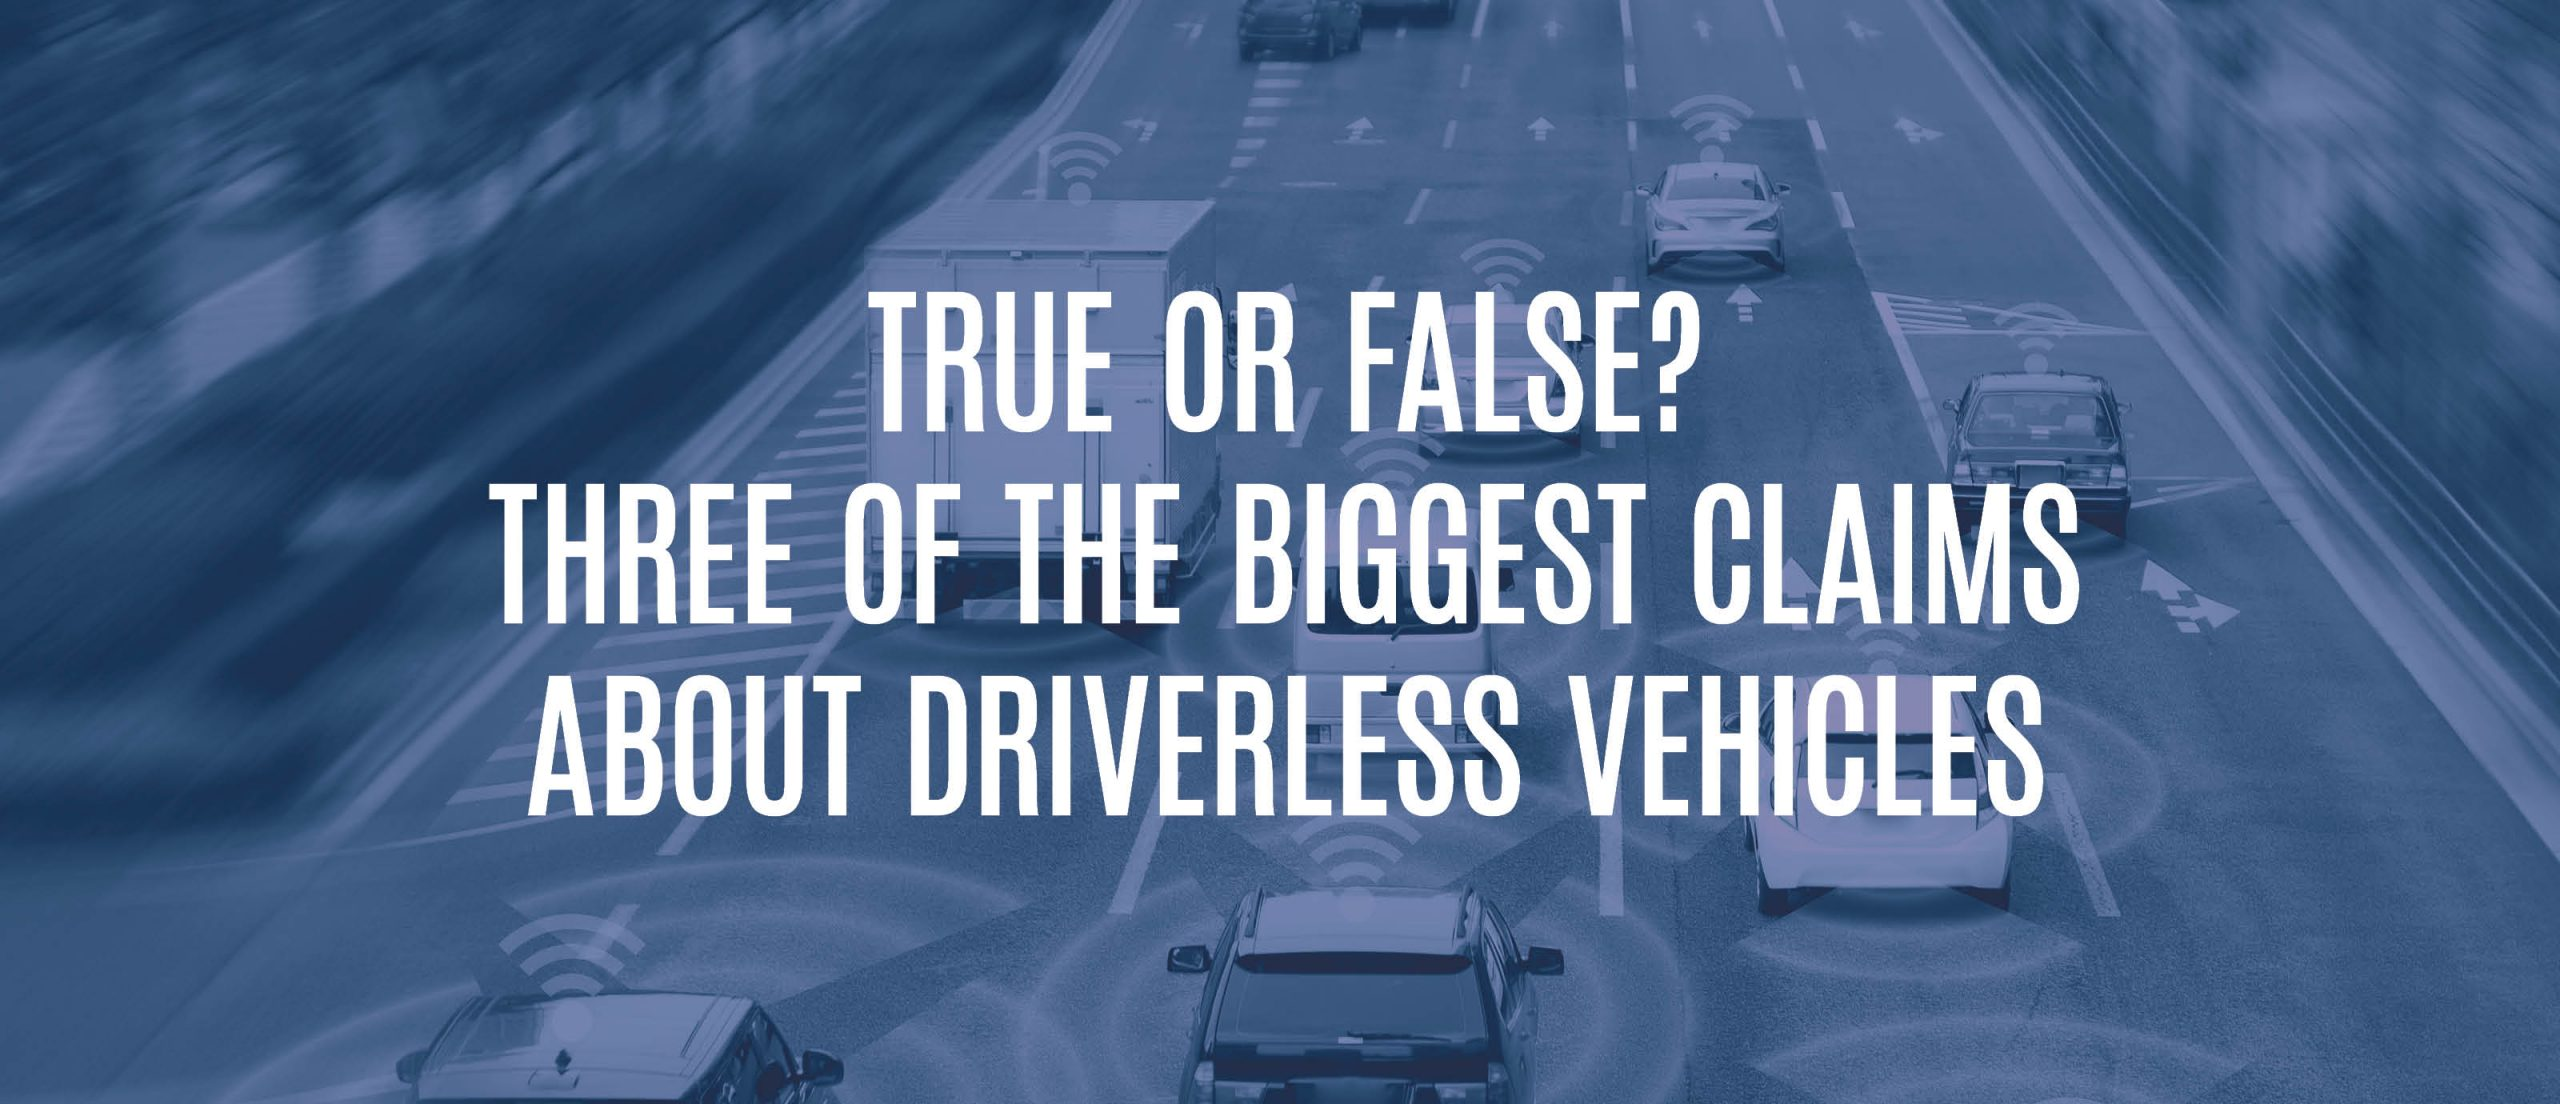 True or False? Three Of The Biggest Claims About Driverless Vehicles